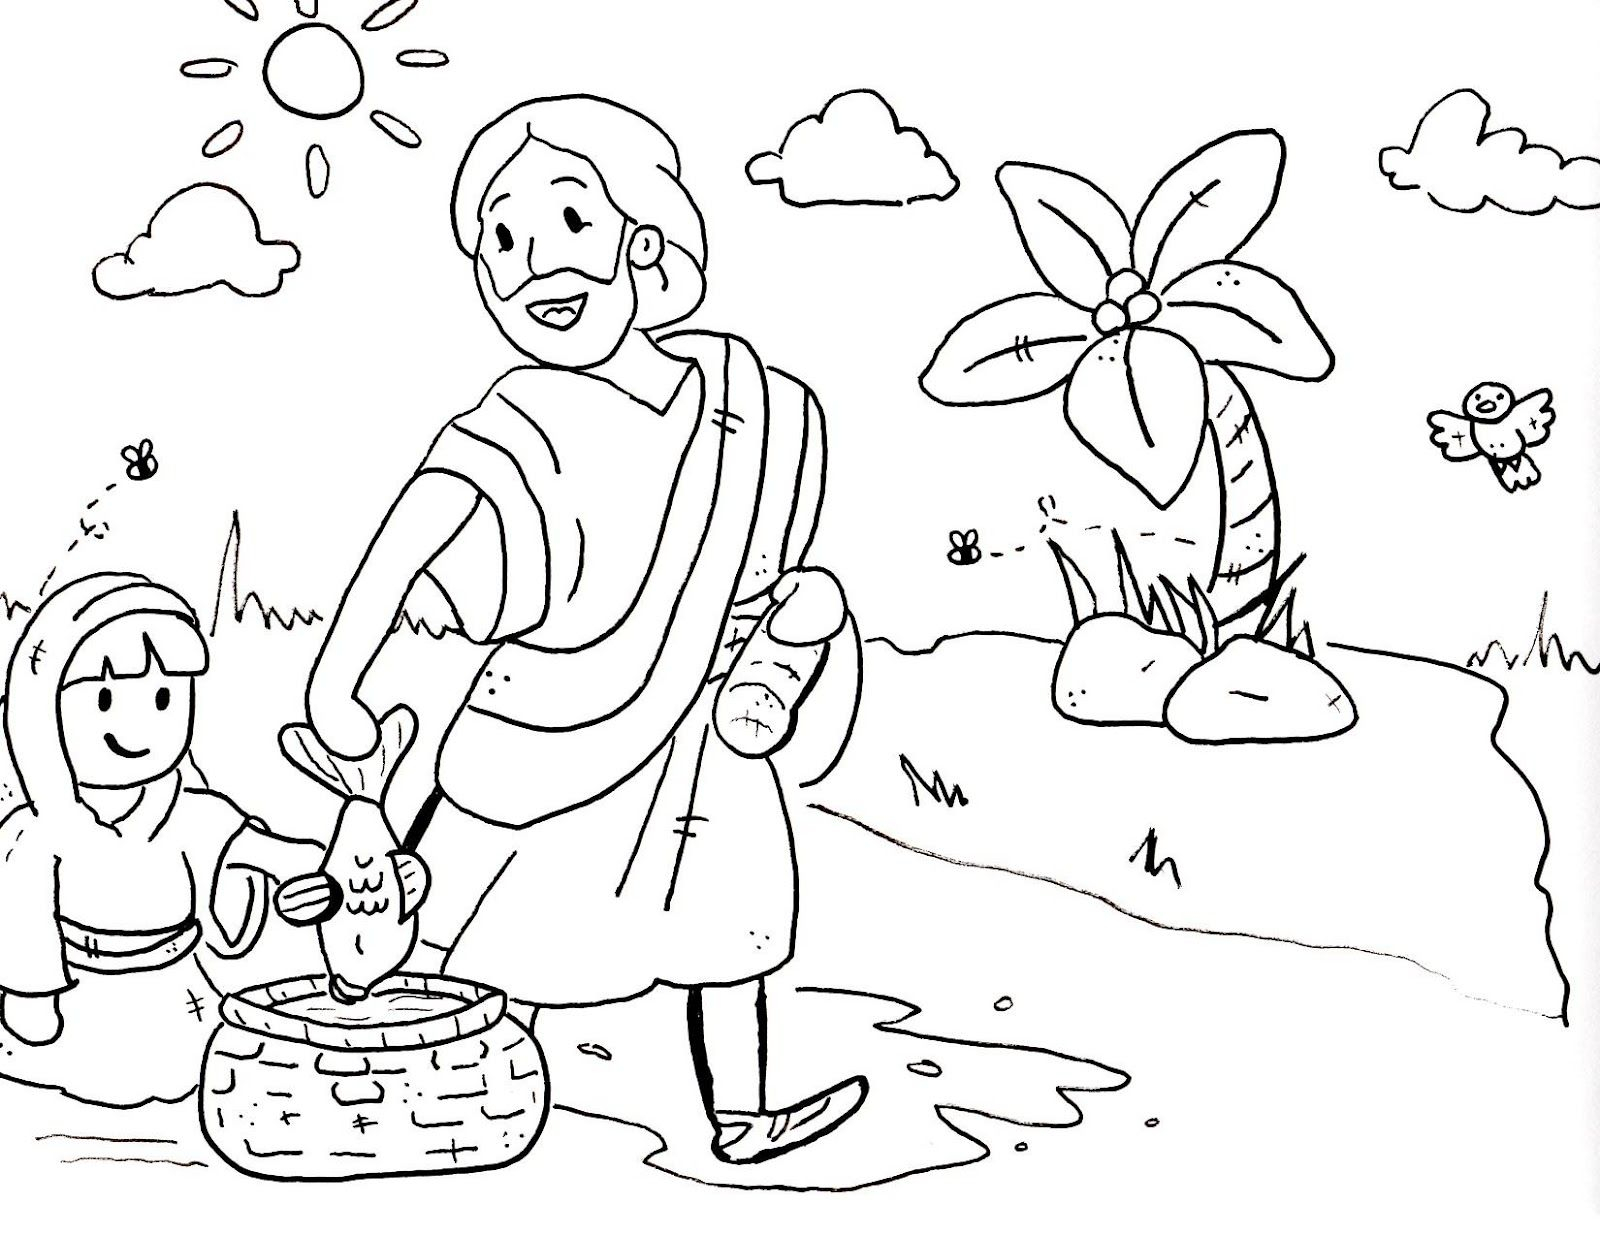 Coloring Pages for Sunday School Lessons Printable 1m - Free Download